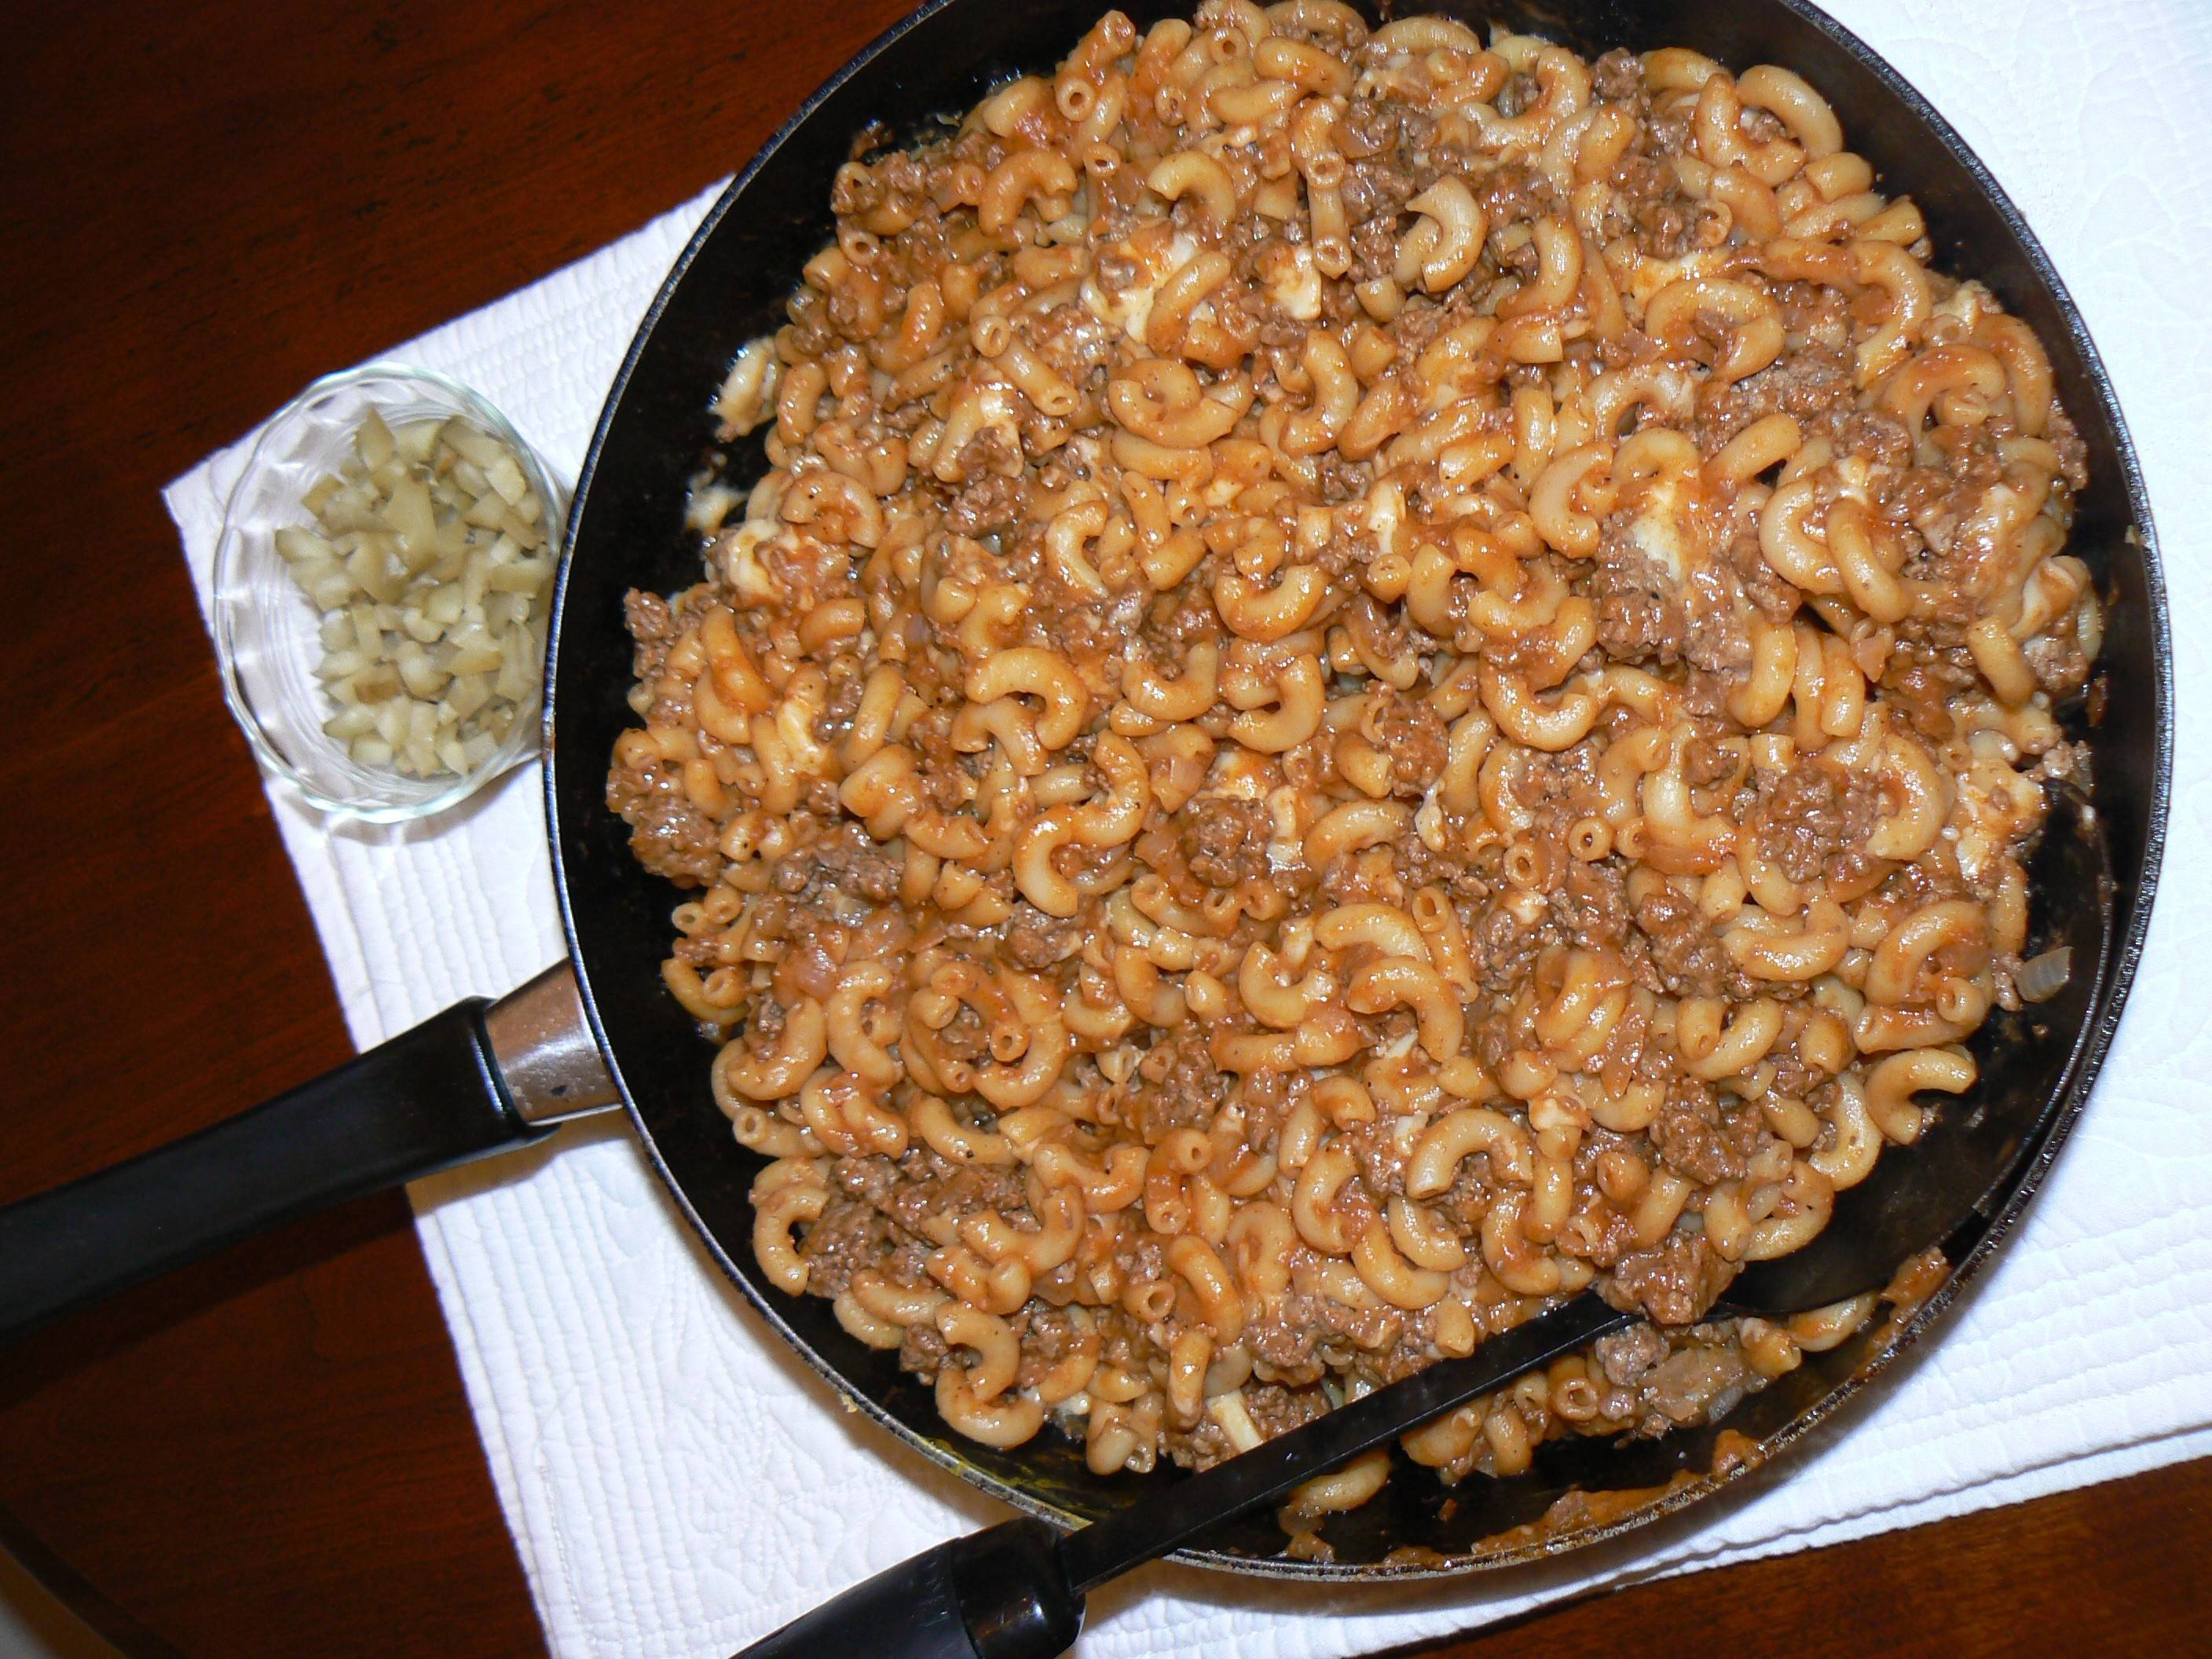 Don Mauer's healthier version of a boxed skillet meal uses lean ground beef and low-sodium broth.